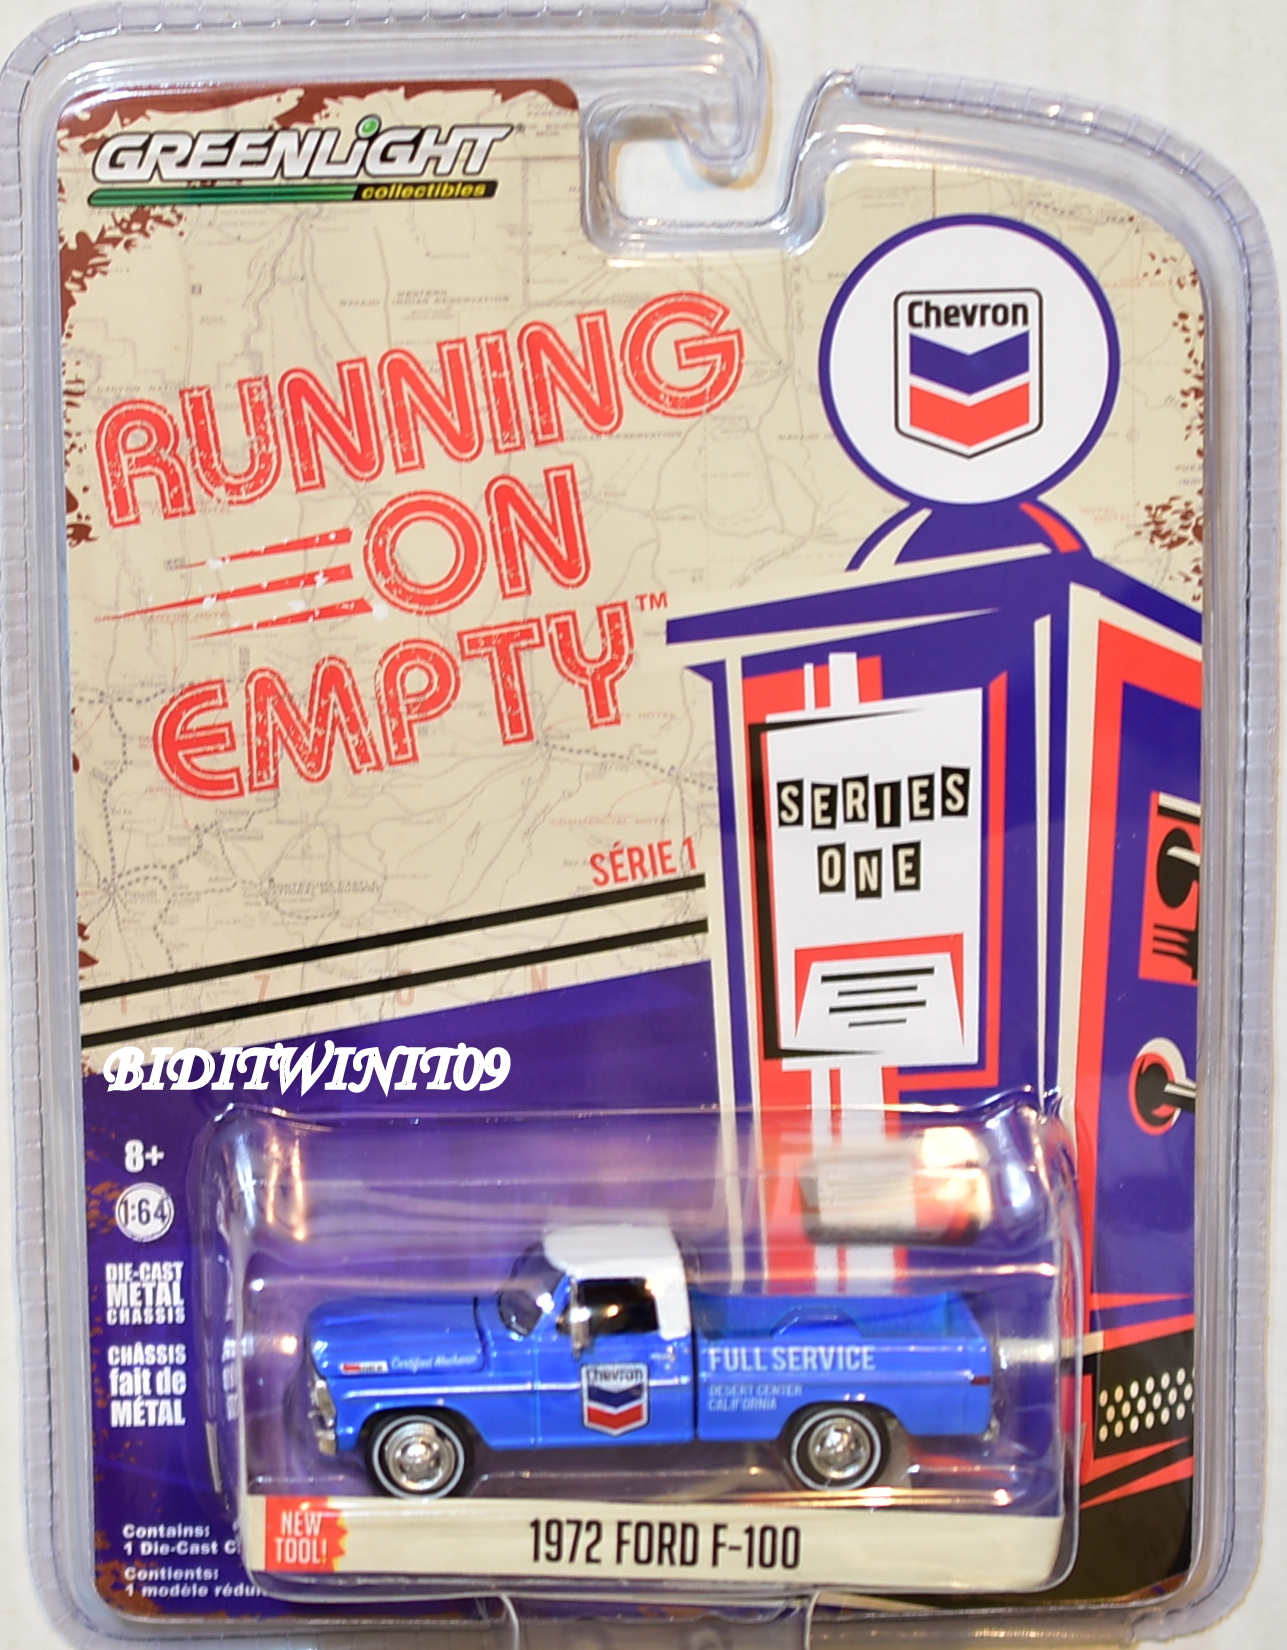 GREENLIGHT RUNNING ON EMPTY SERIES 1 1972 FORD F-100 BLUE E+